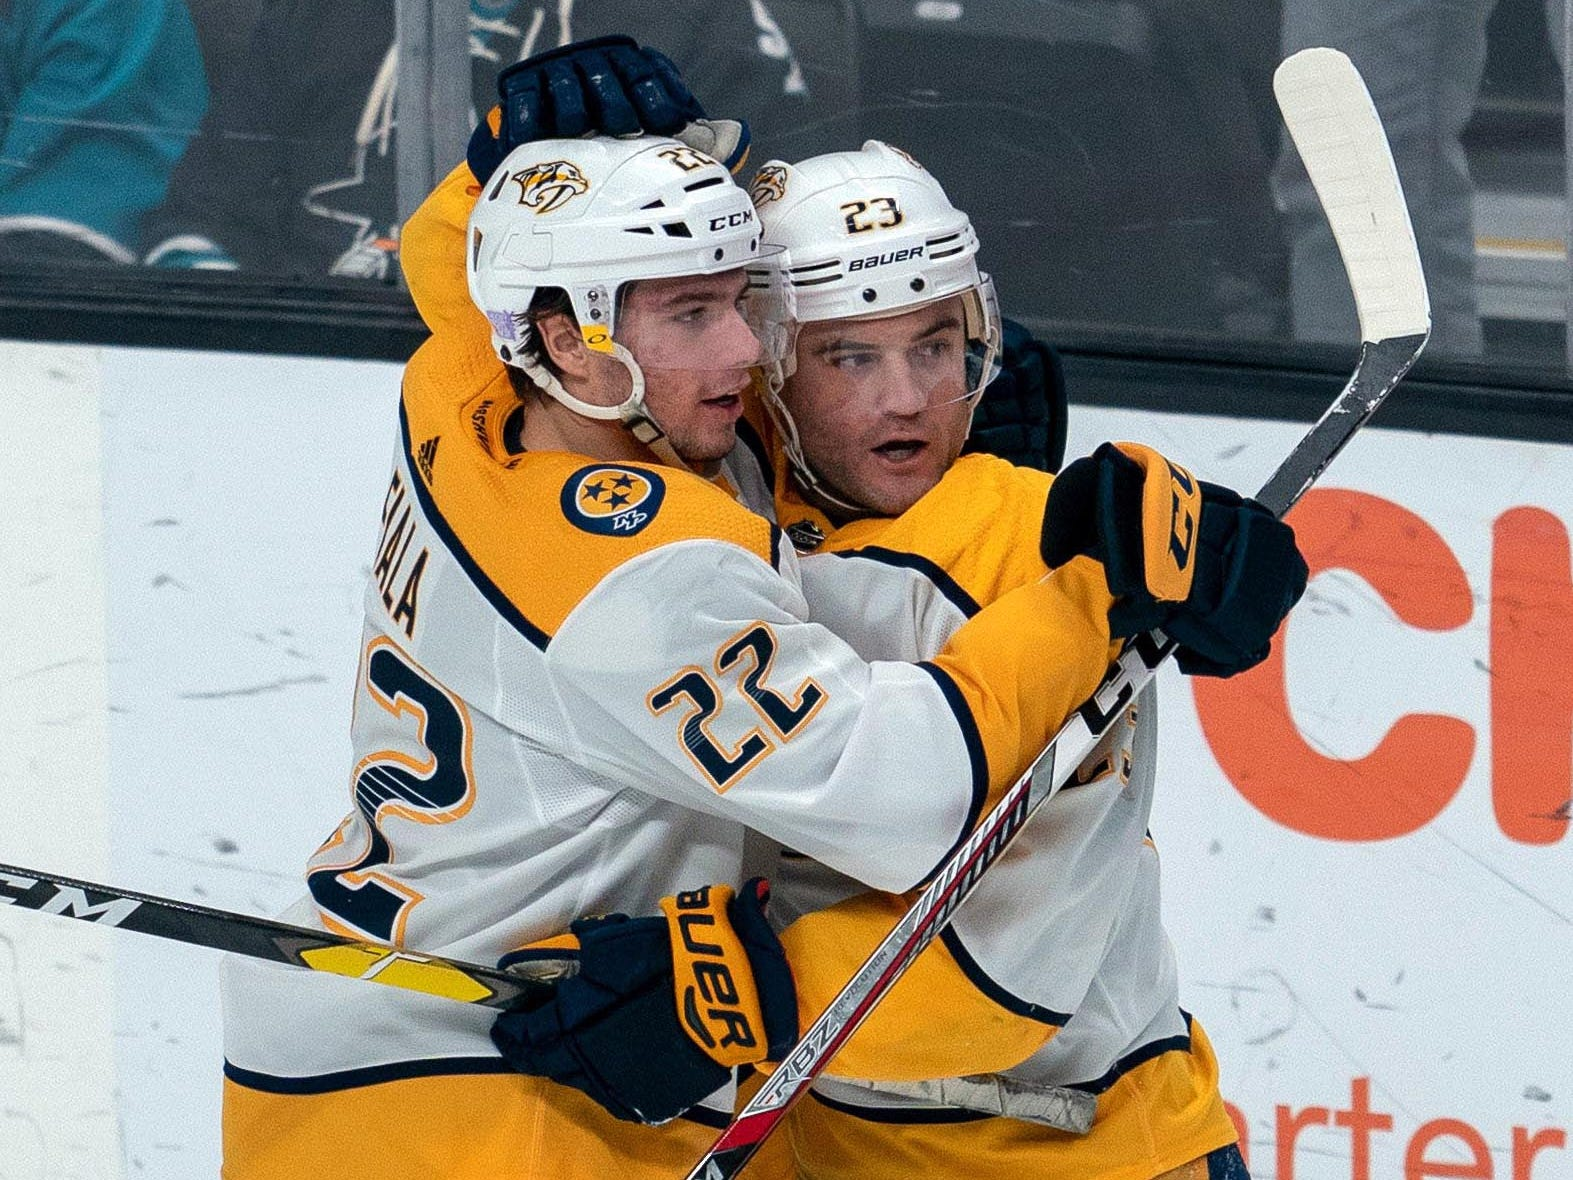 Nashville Predators left wing Kevin Fiala (22) and center Rocco Grimaldi (23) celebrate after a goal against the San Jose Sharks during the third period at SAP Center at San Jose.